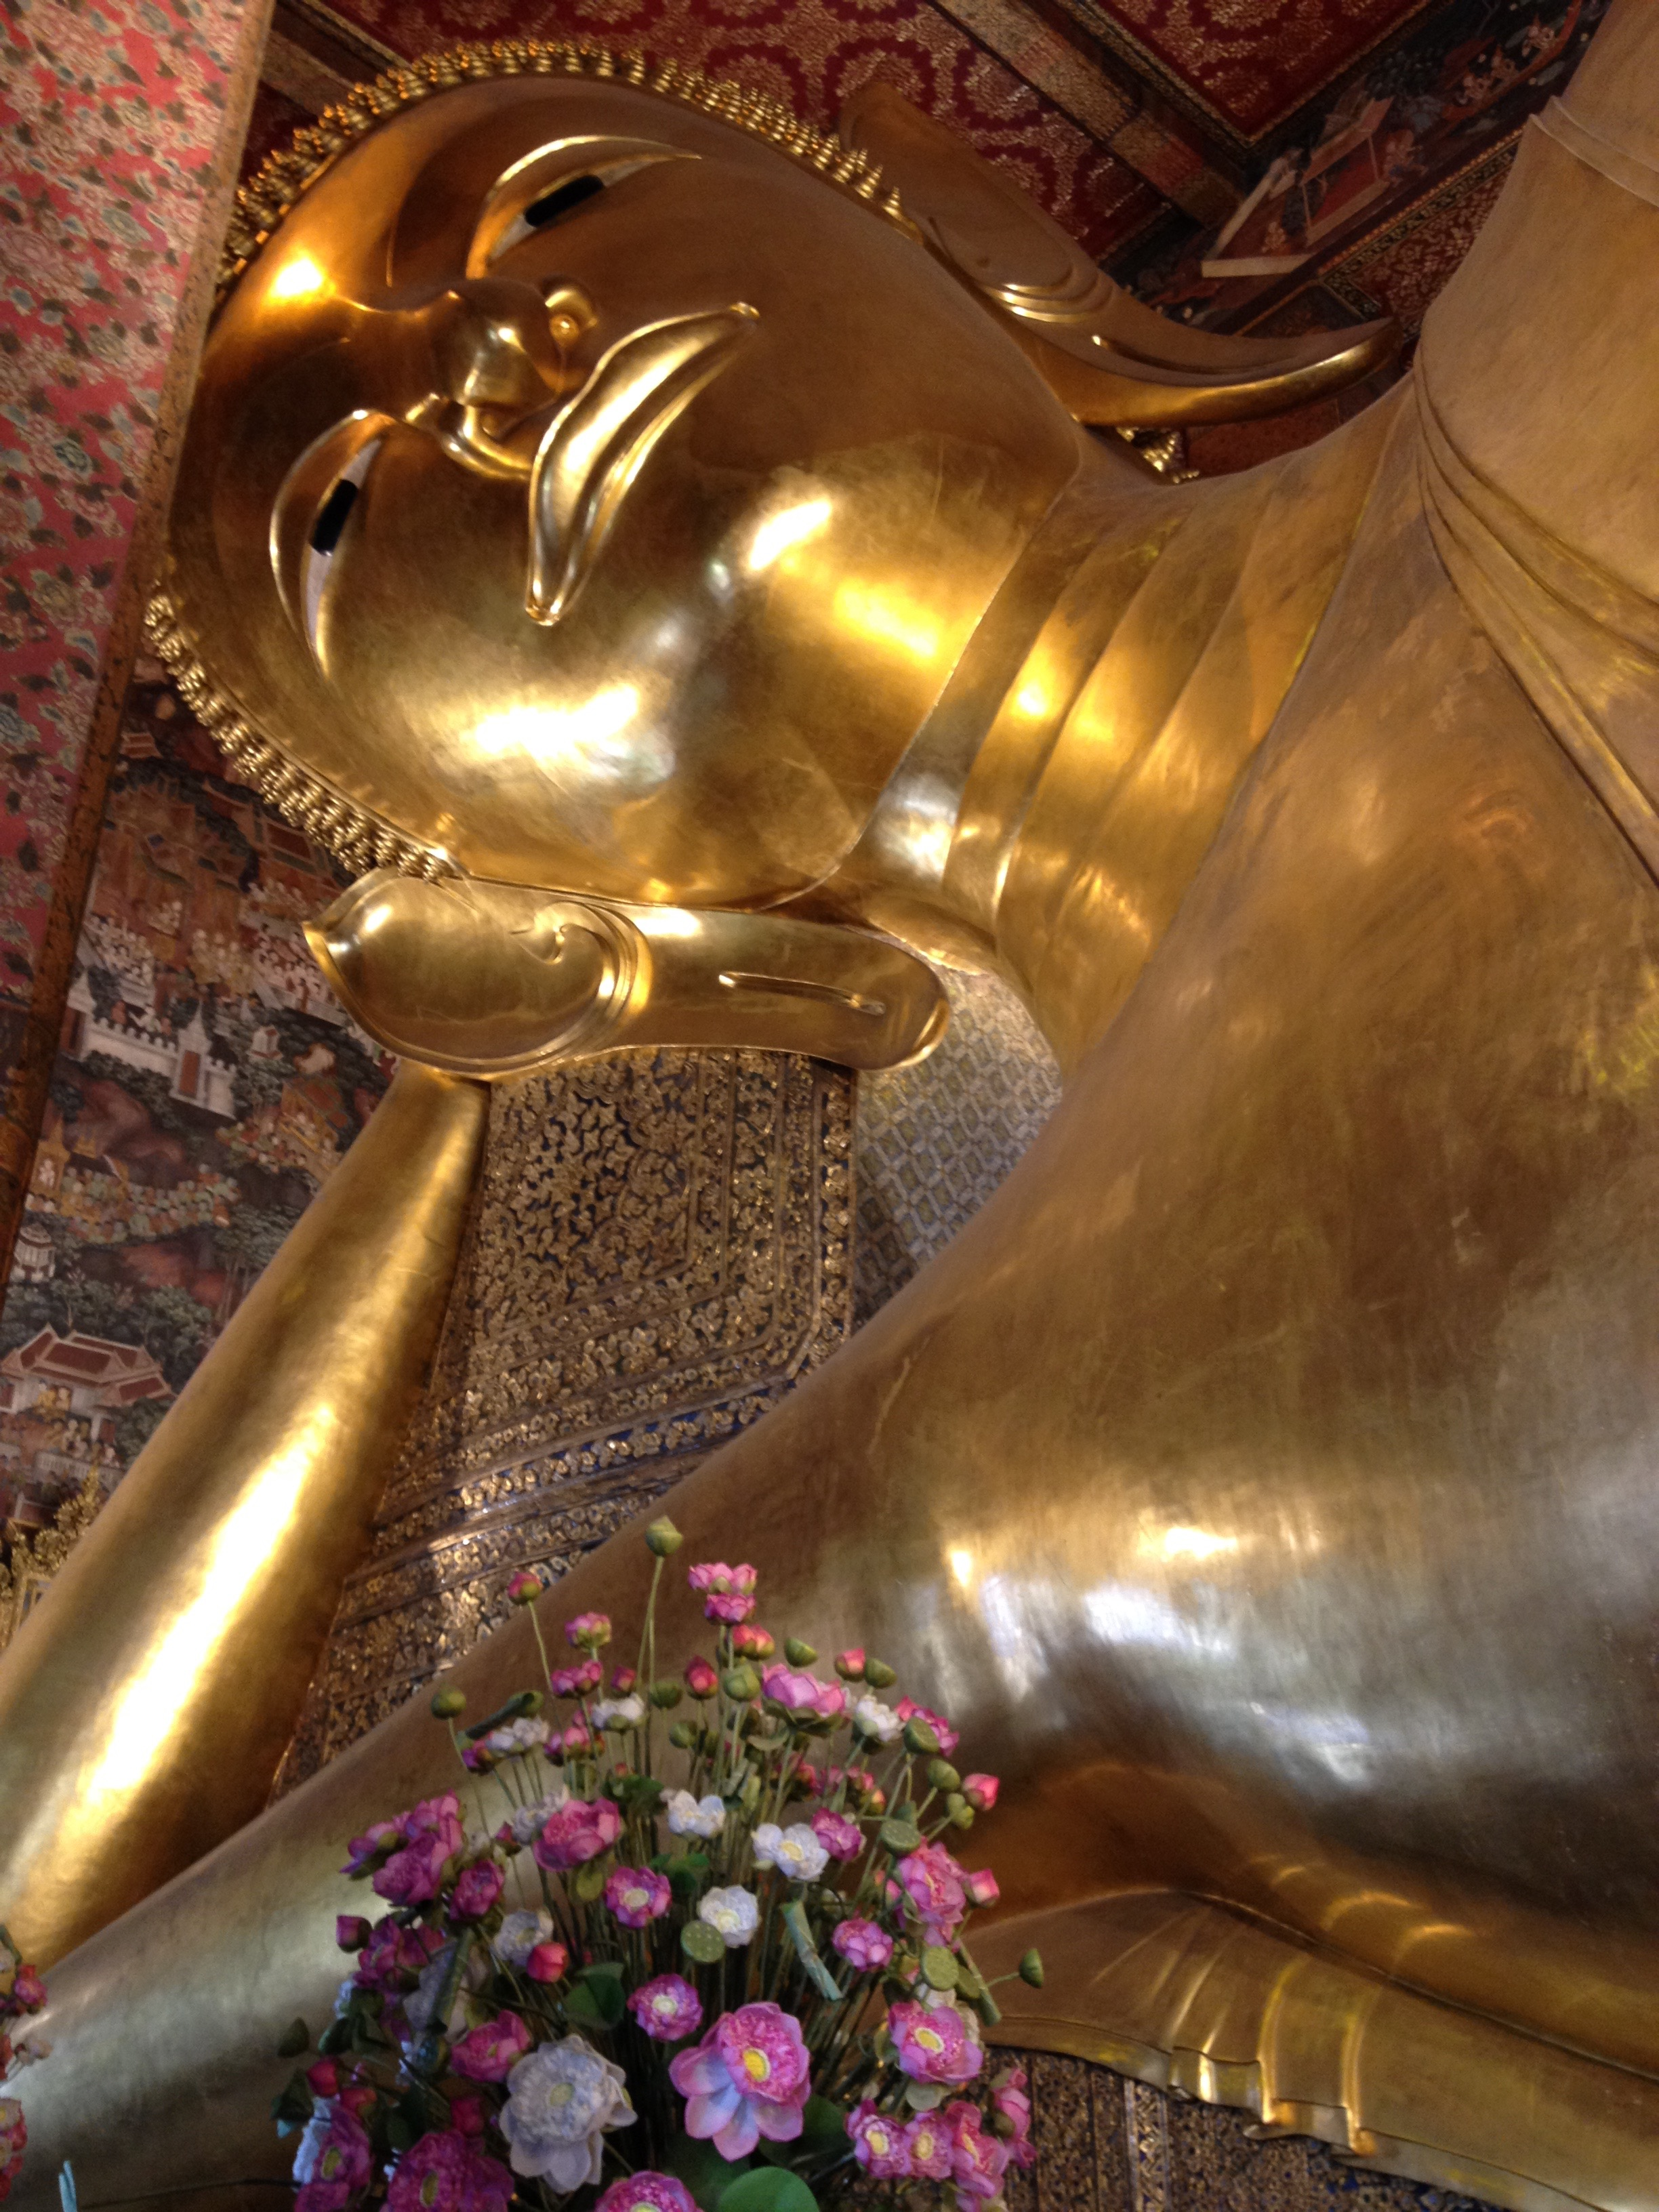 You've got your sitting Buddha, you're walking Buddha, your reclining Buddha, and your standing Buddha. This is from Wat Pho. Guess which one this is.